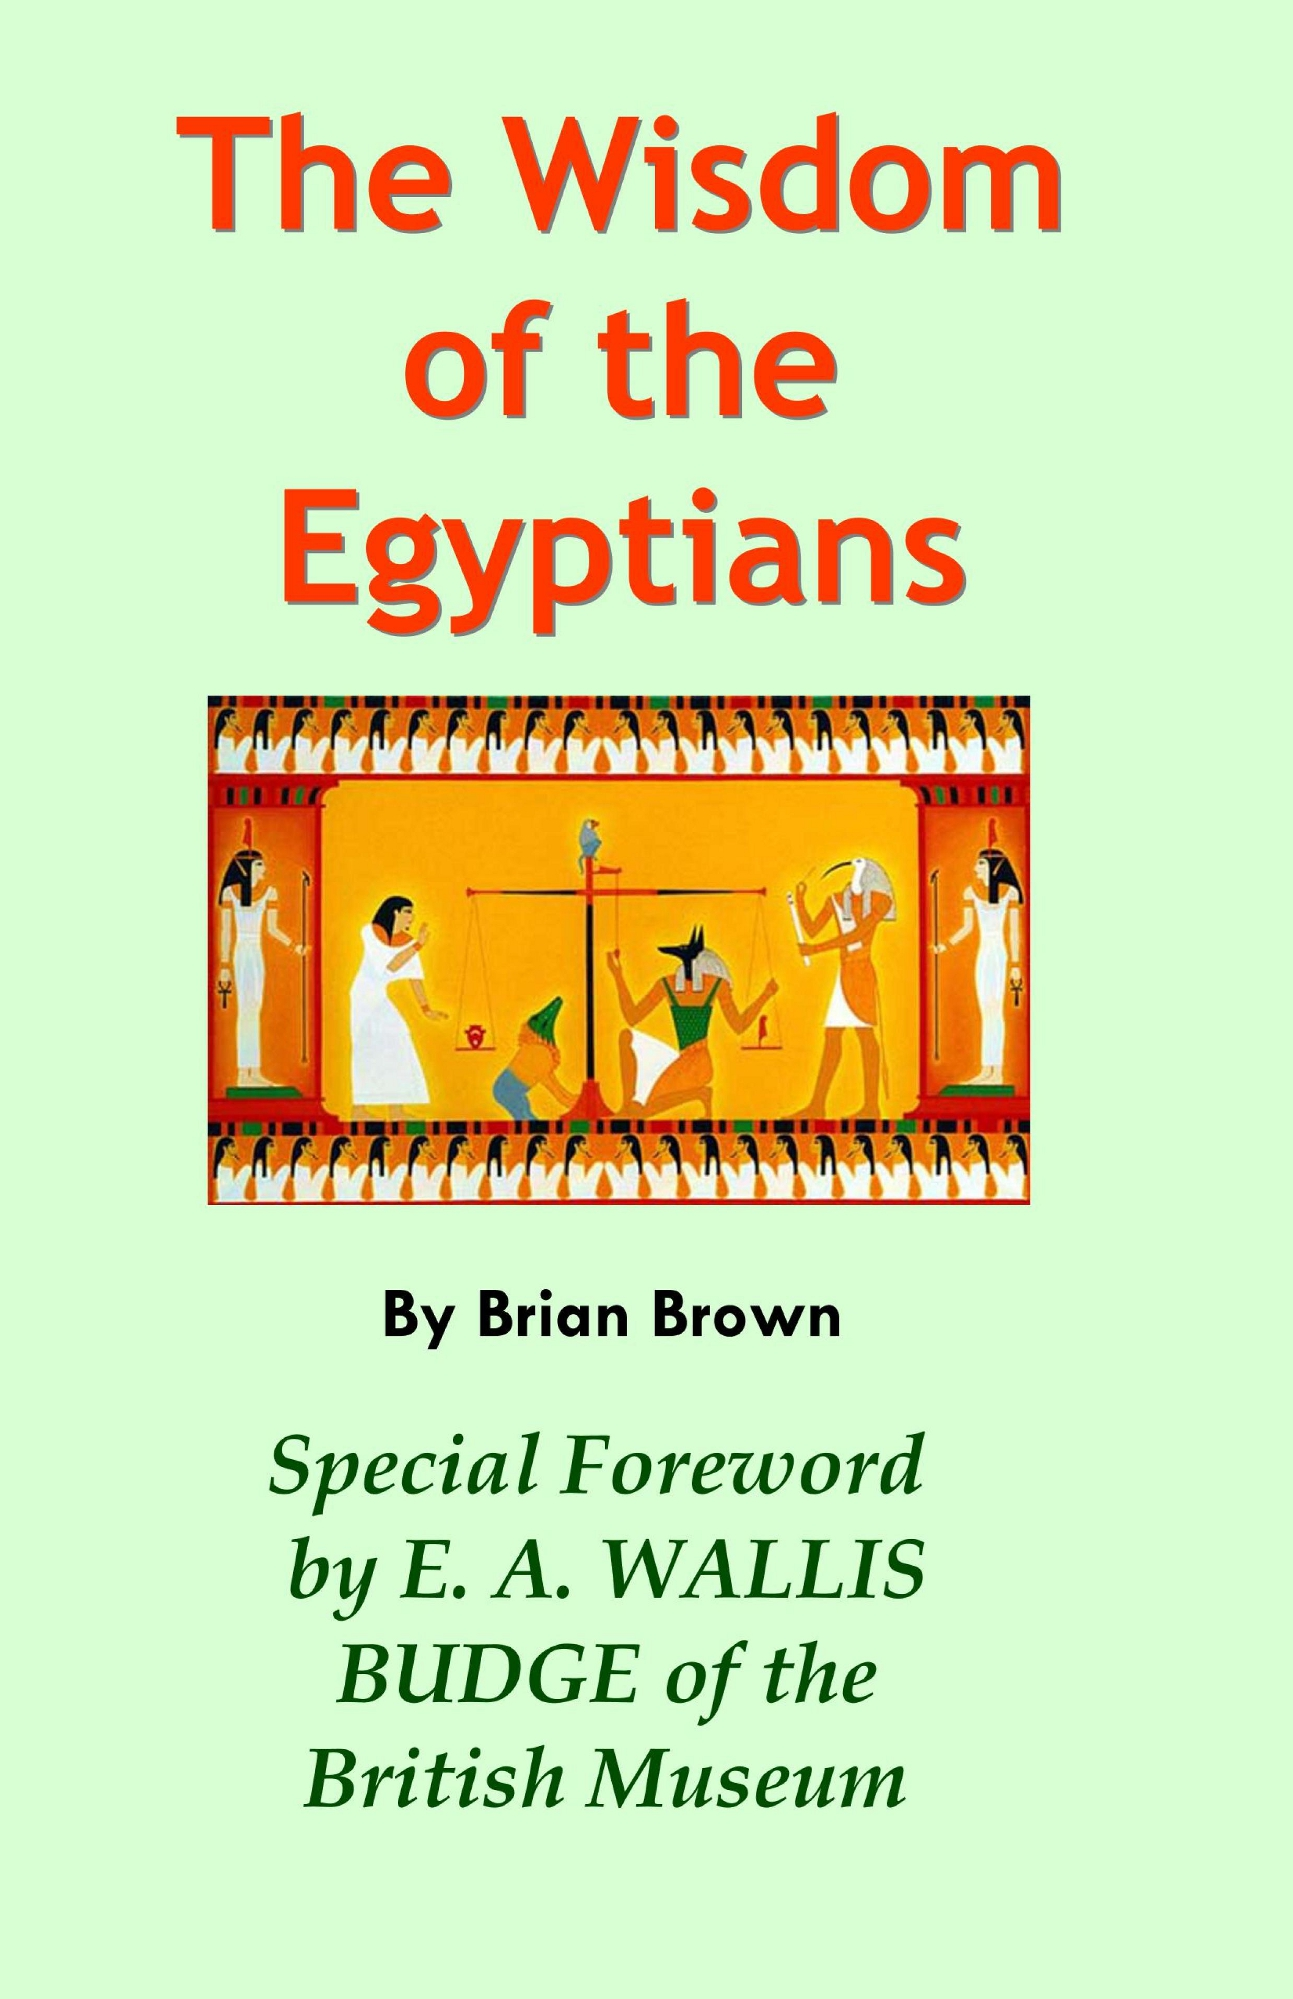 The Wisdom of the Egyptians